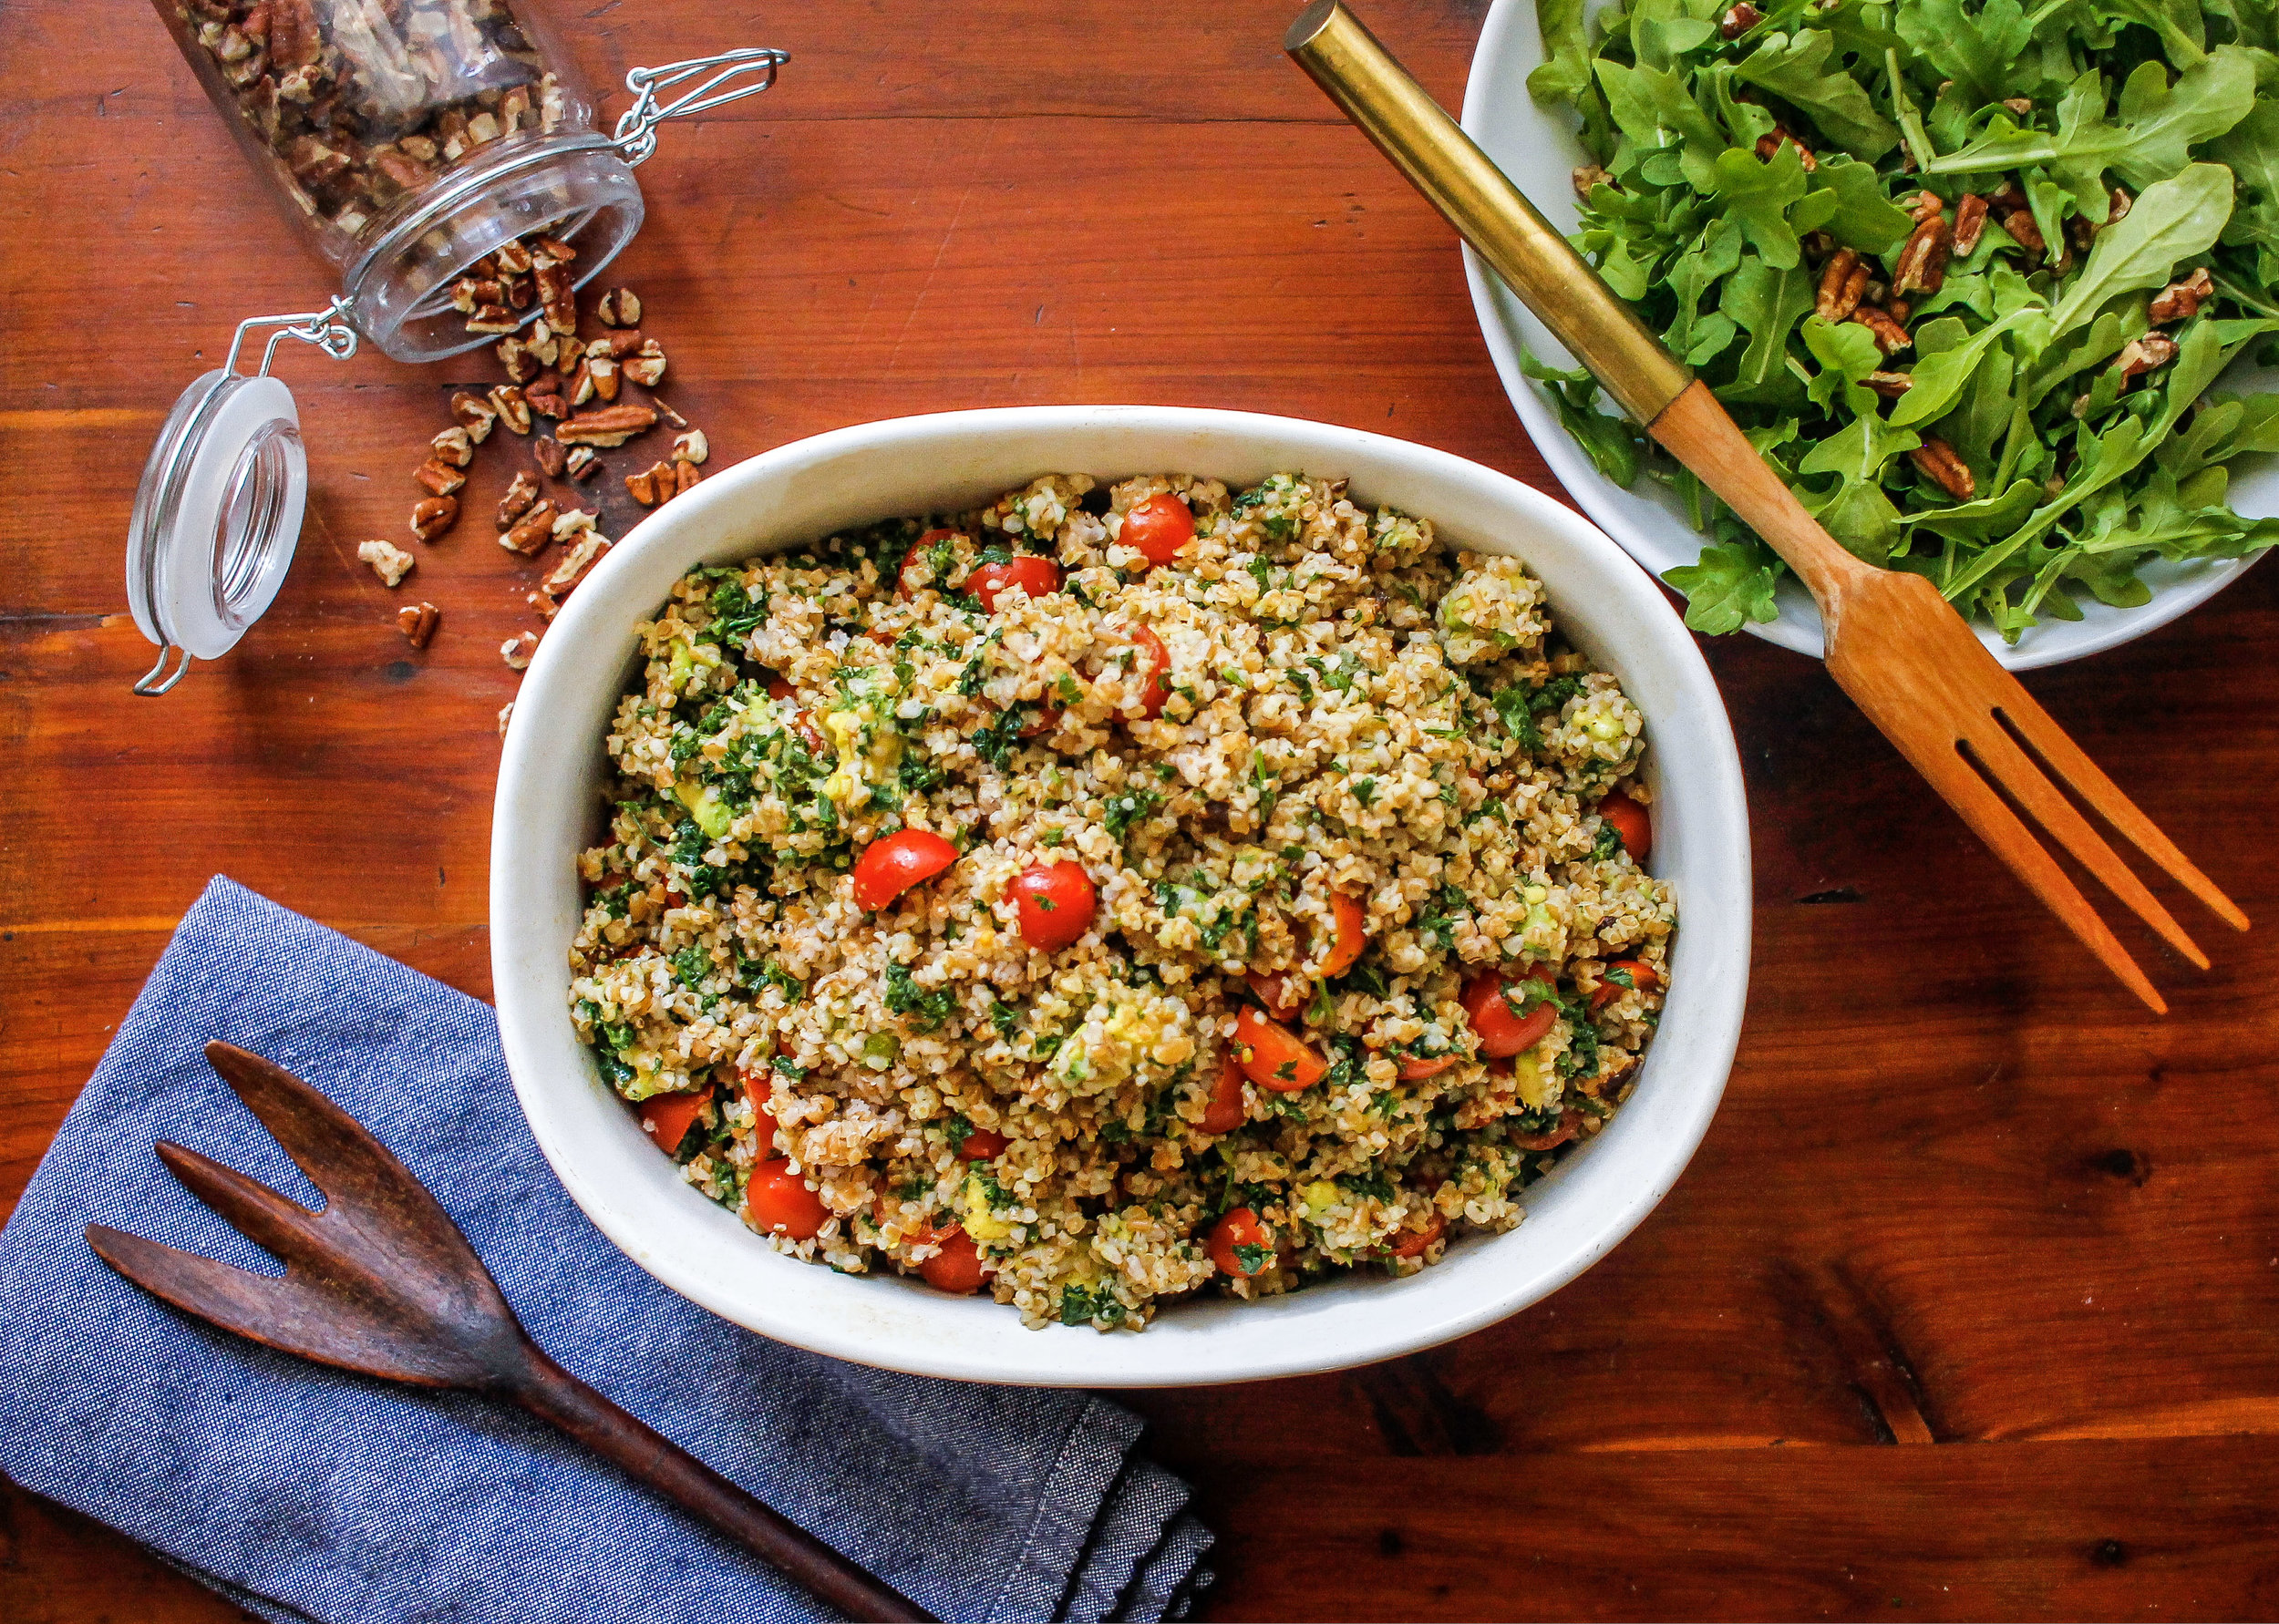 Avocado Tabbouleh served with baby Arugula and chopped Pecans